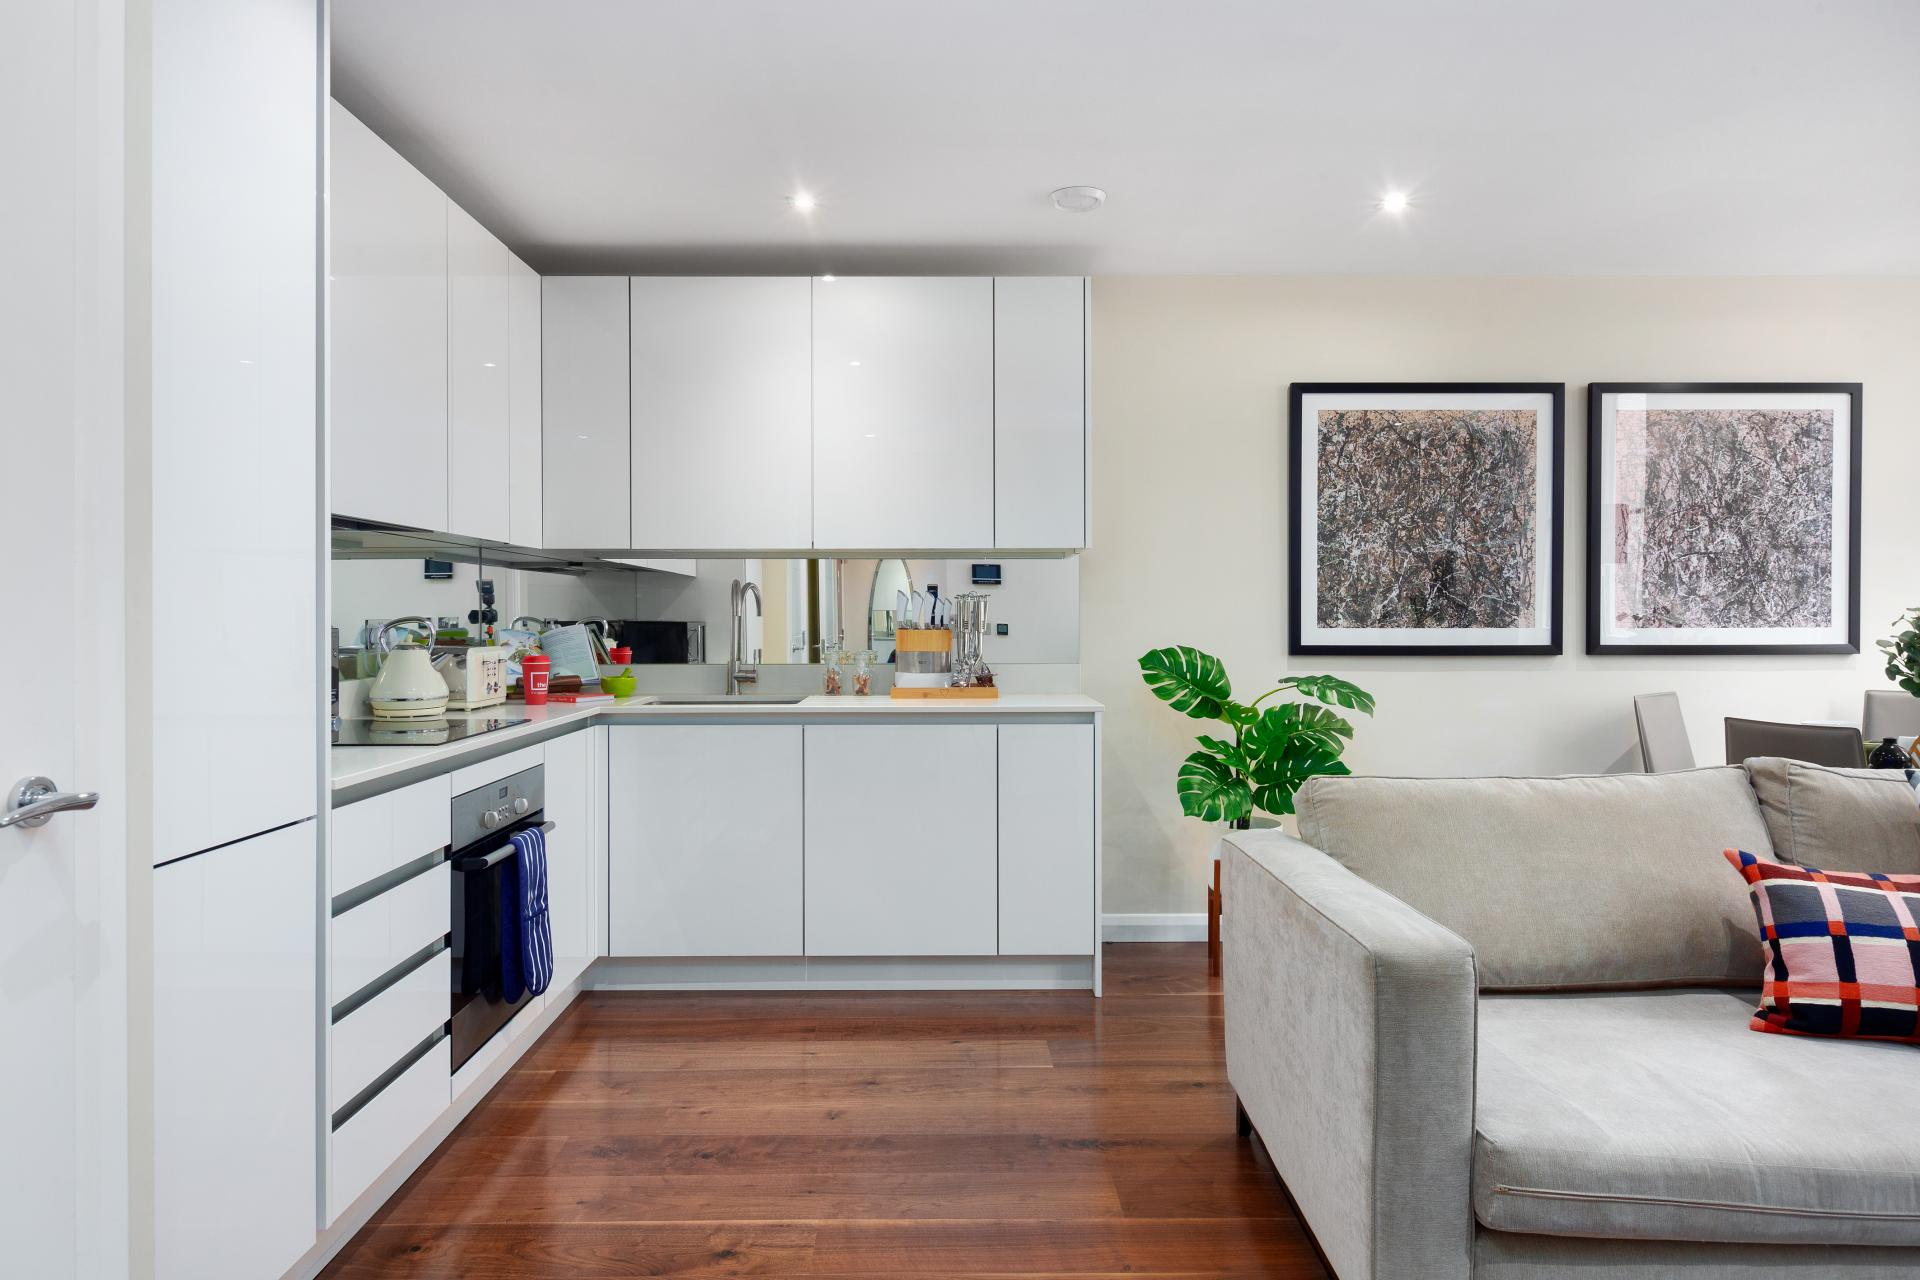 Kitchen at Chancery Lane Apartment, Chancery Lane, London - Citybase Apartments